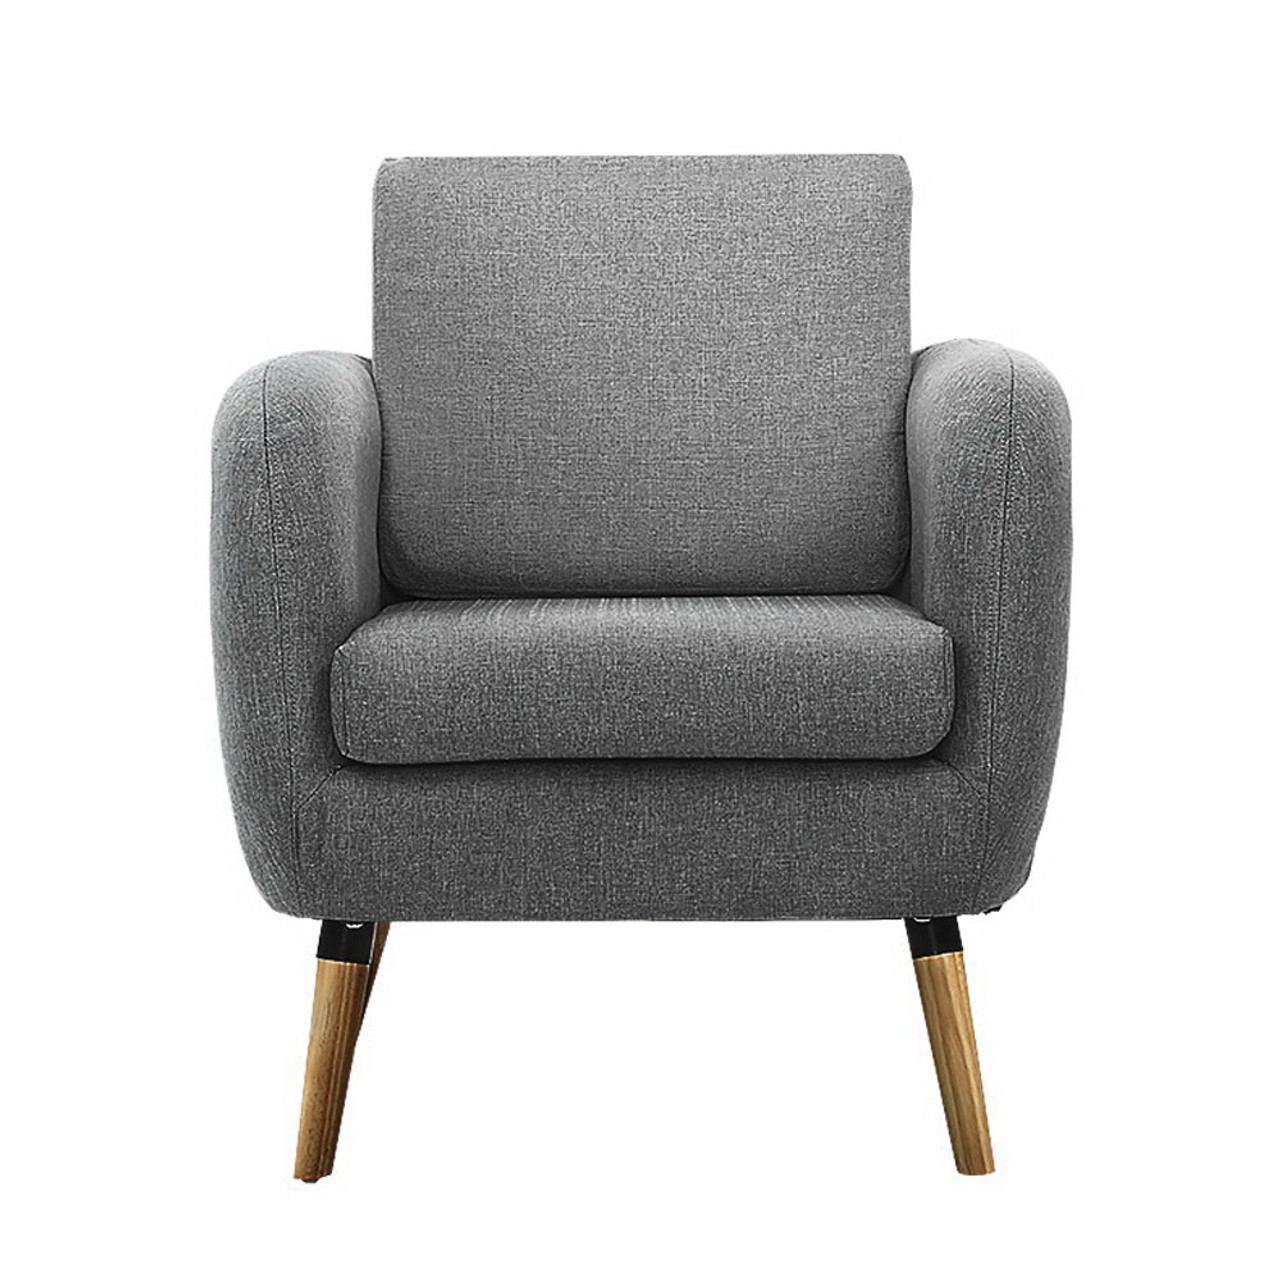 Buy Artiss Lounge Chair Armchair With Ottoman Tub Accent Sofa Linen Fabric Grey 242 6 Free Shipping